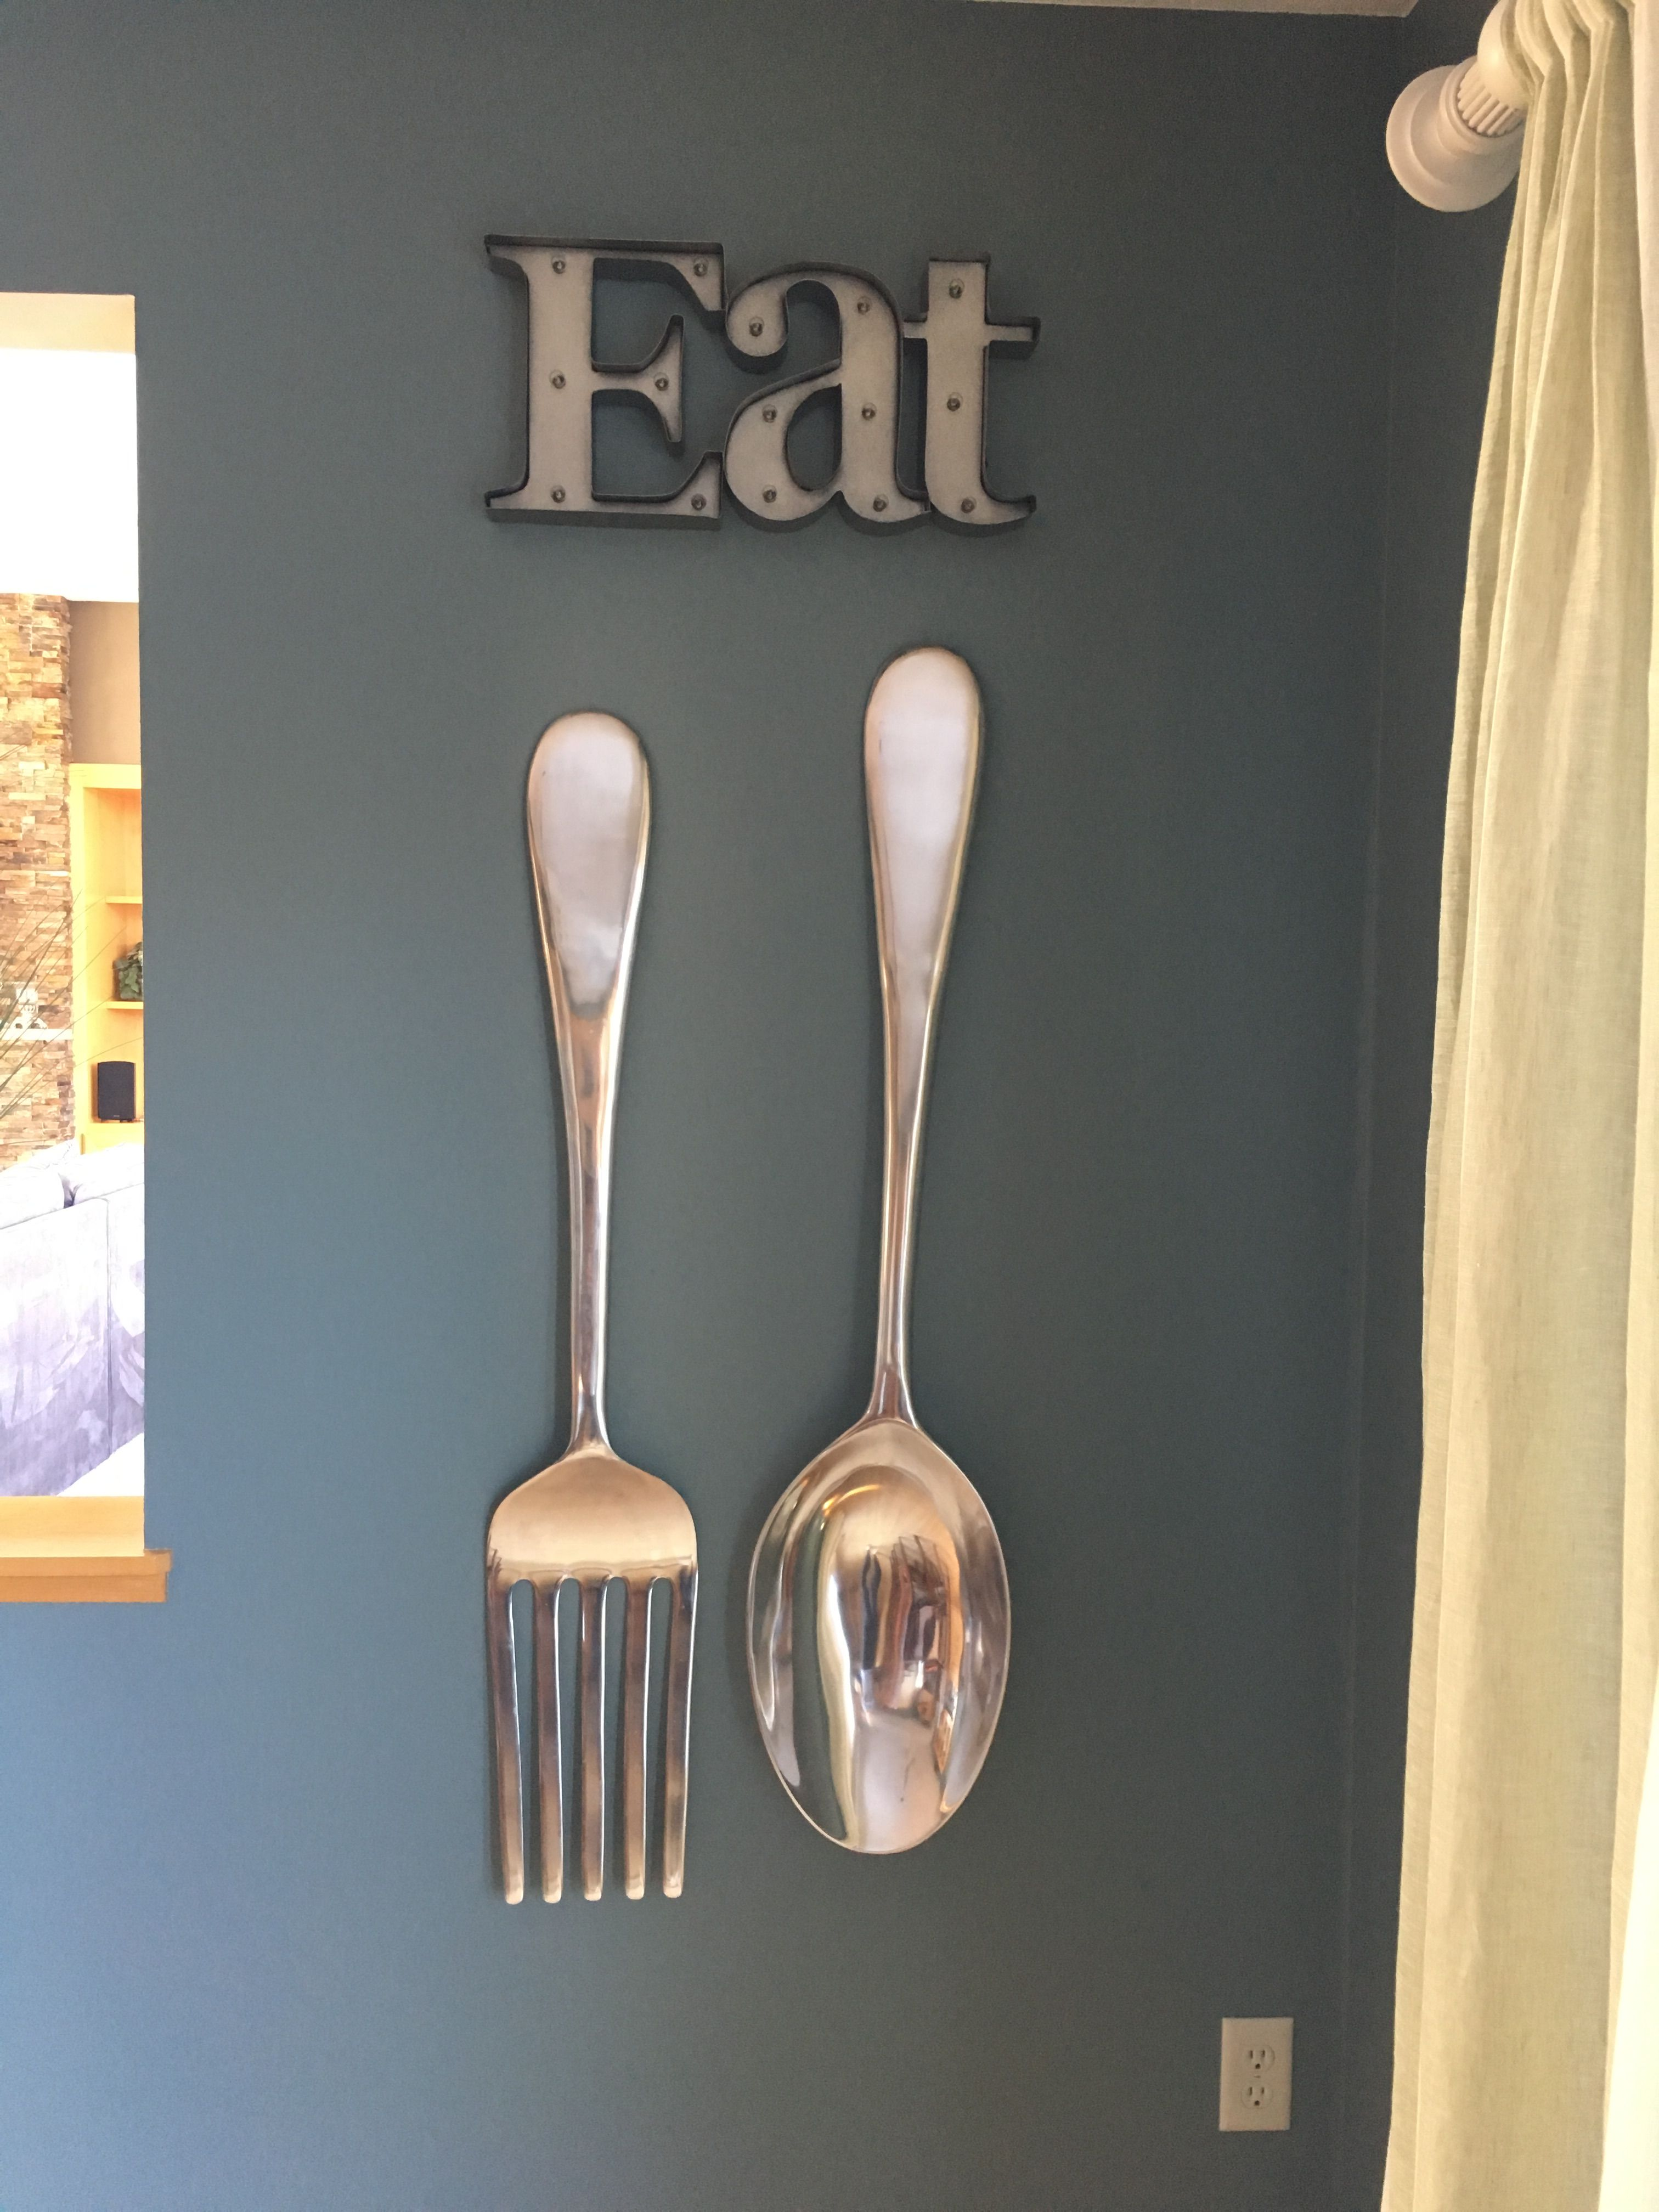 Kitchen Decorations Spoon And Fork From Pier 1 And Eat Sign From Michael S Kitchen Wall Decor Country Kitchen Wall Decor Kitchen Wall Design